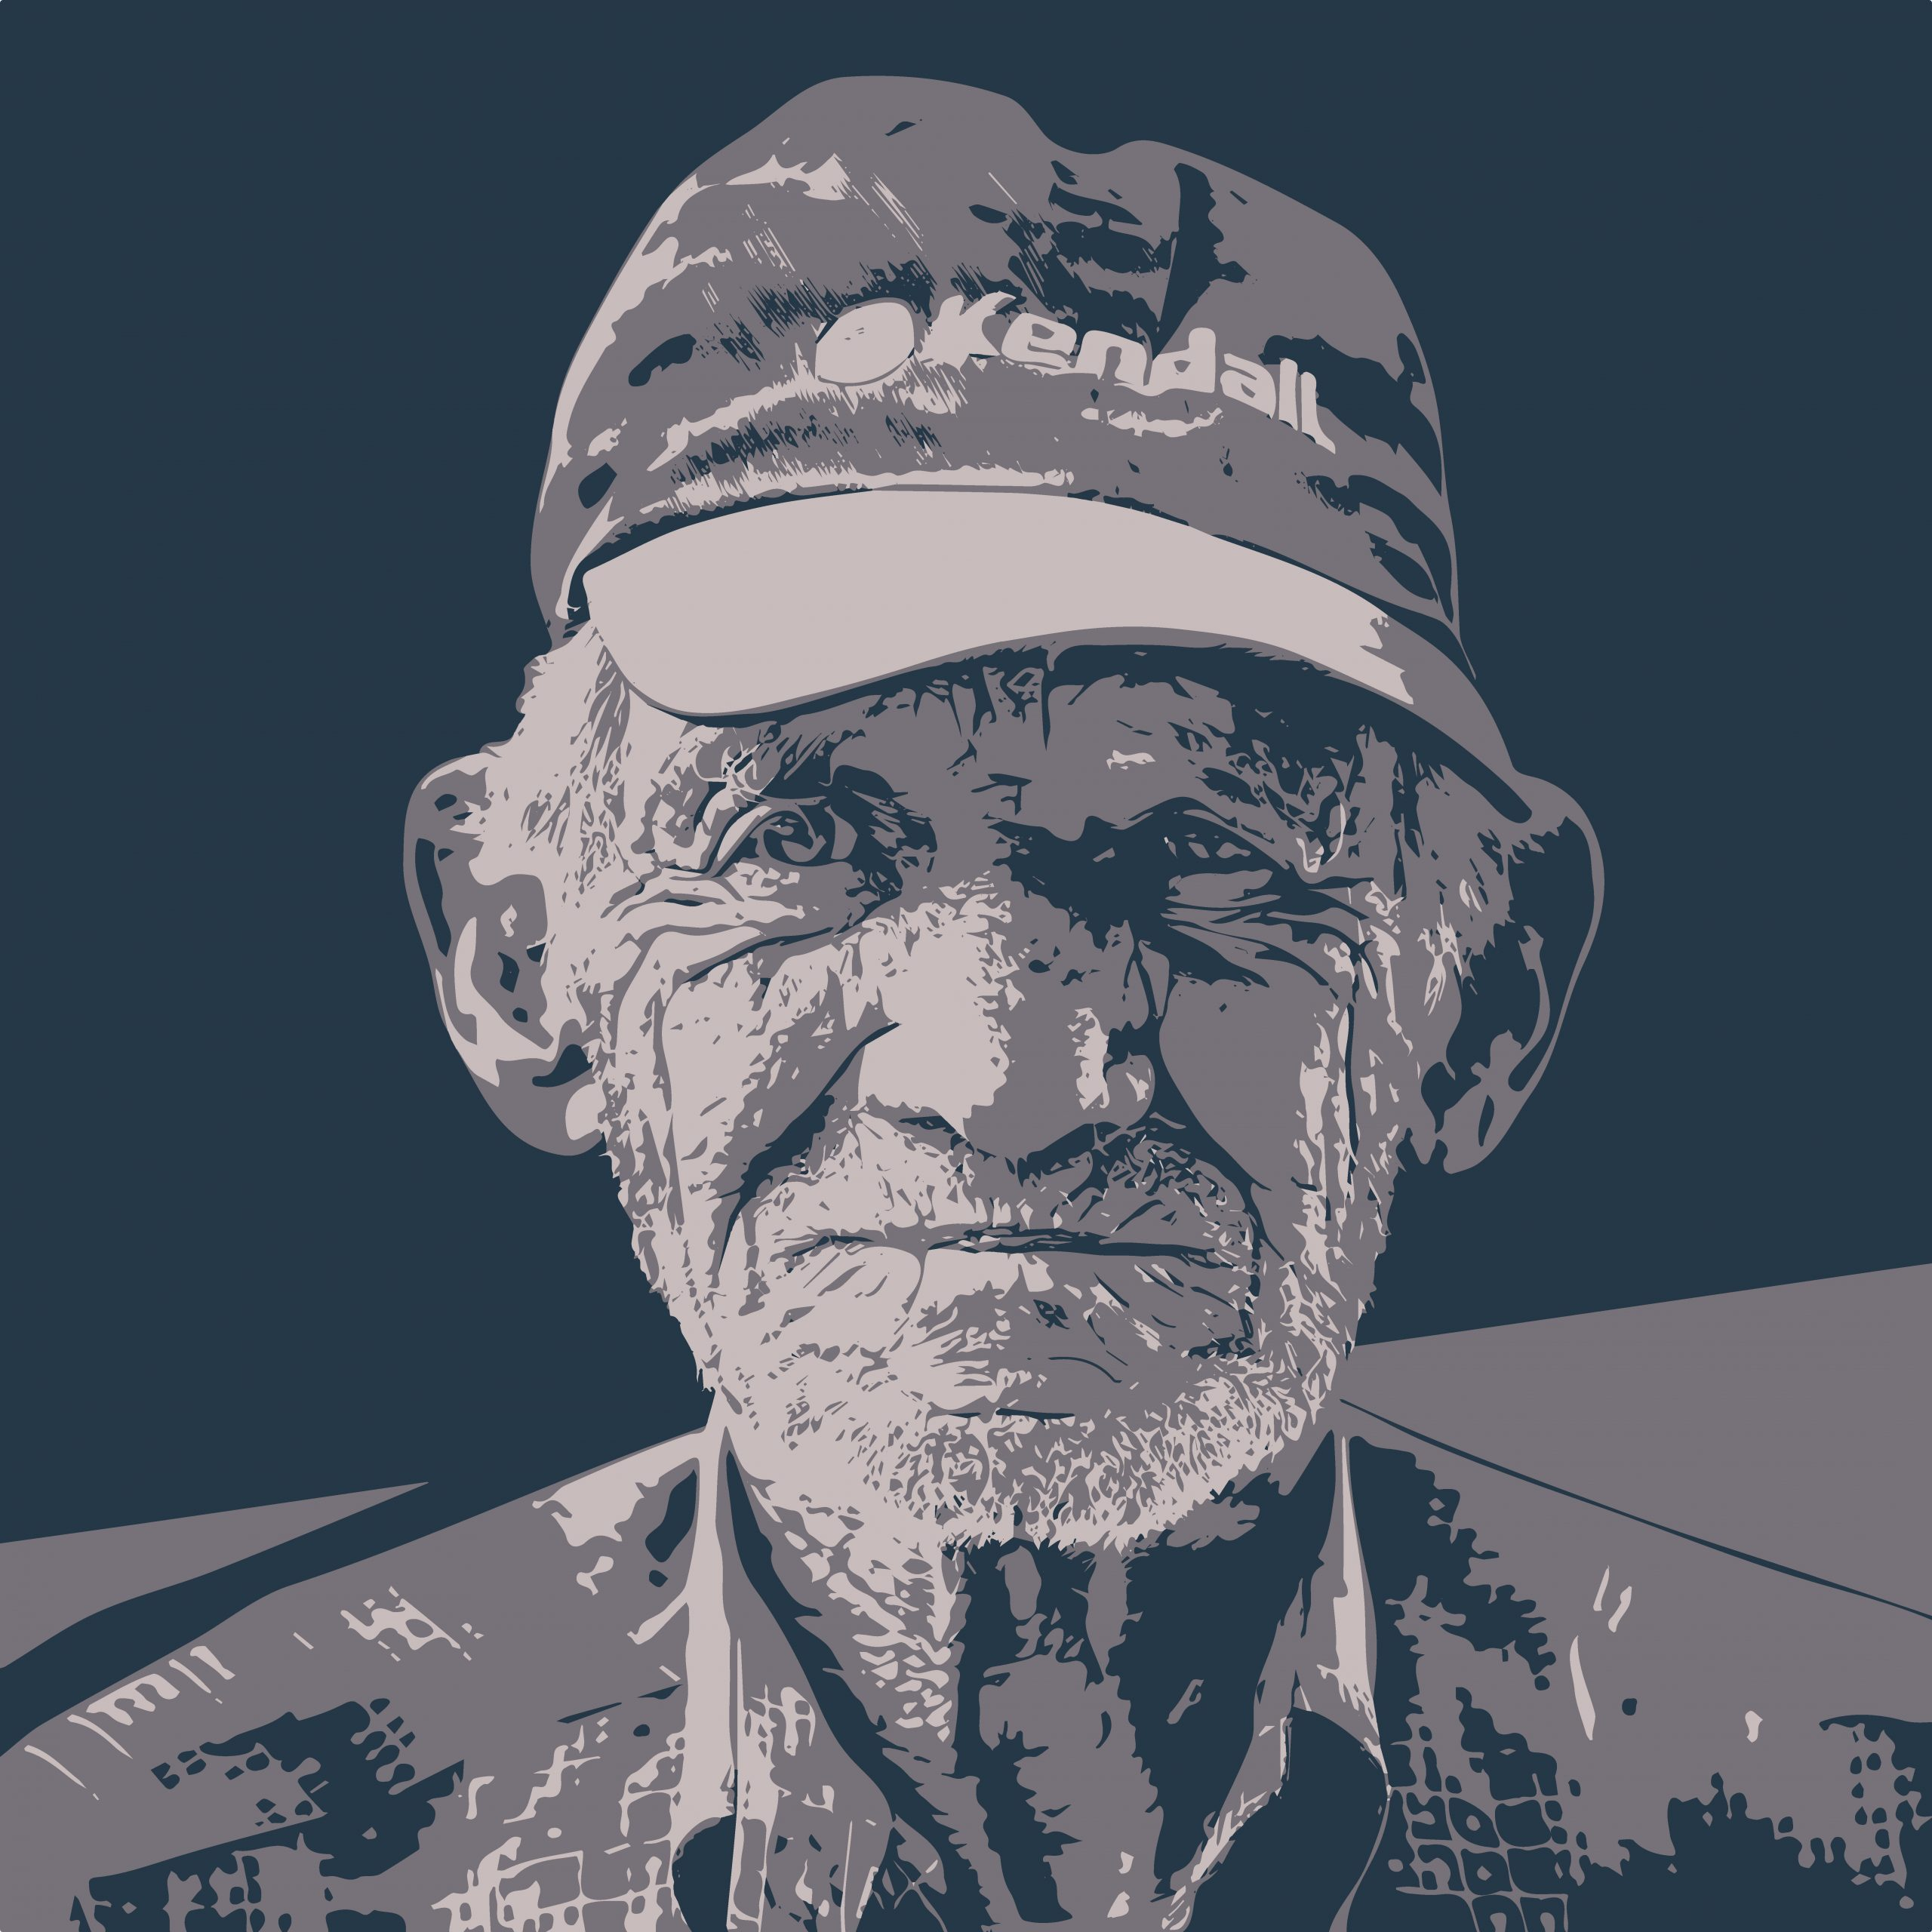 Portrait illustration of an old man